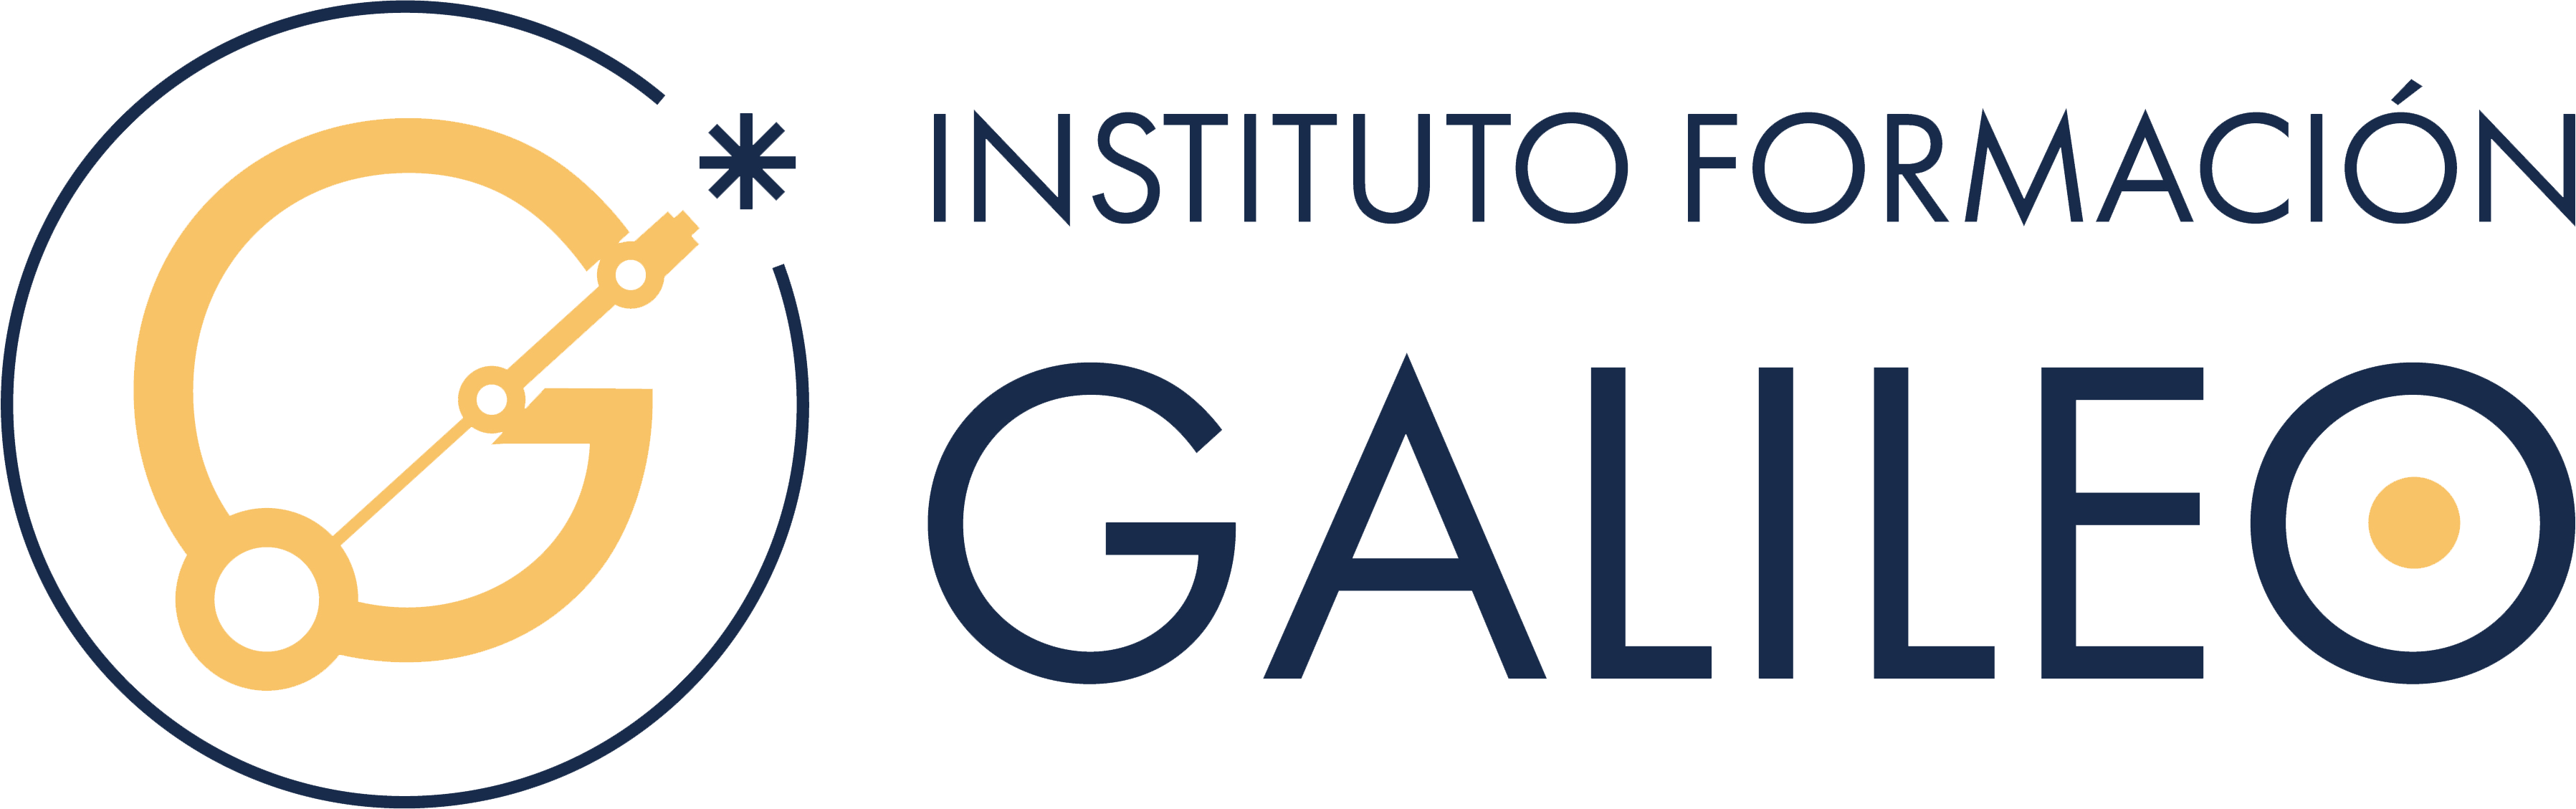 Instituto Galileo